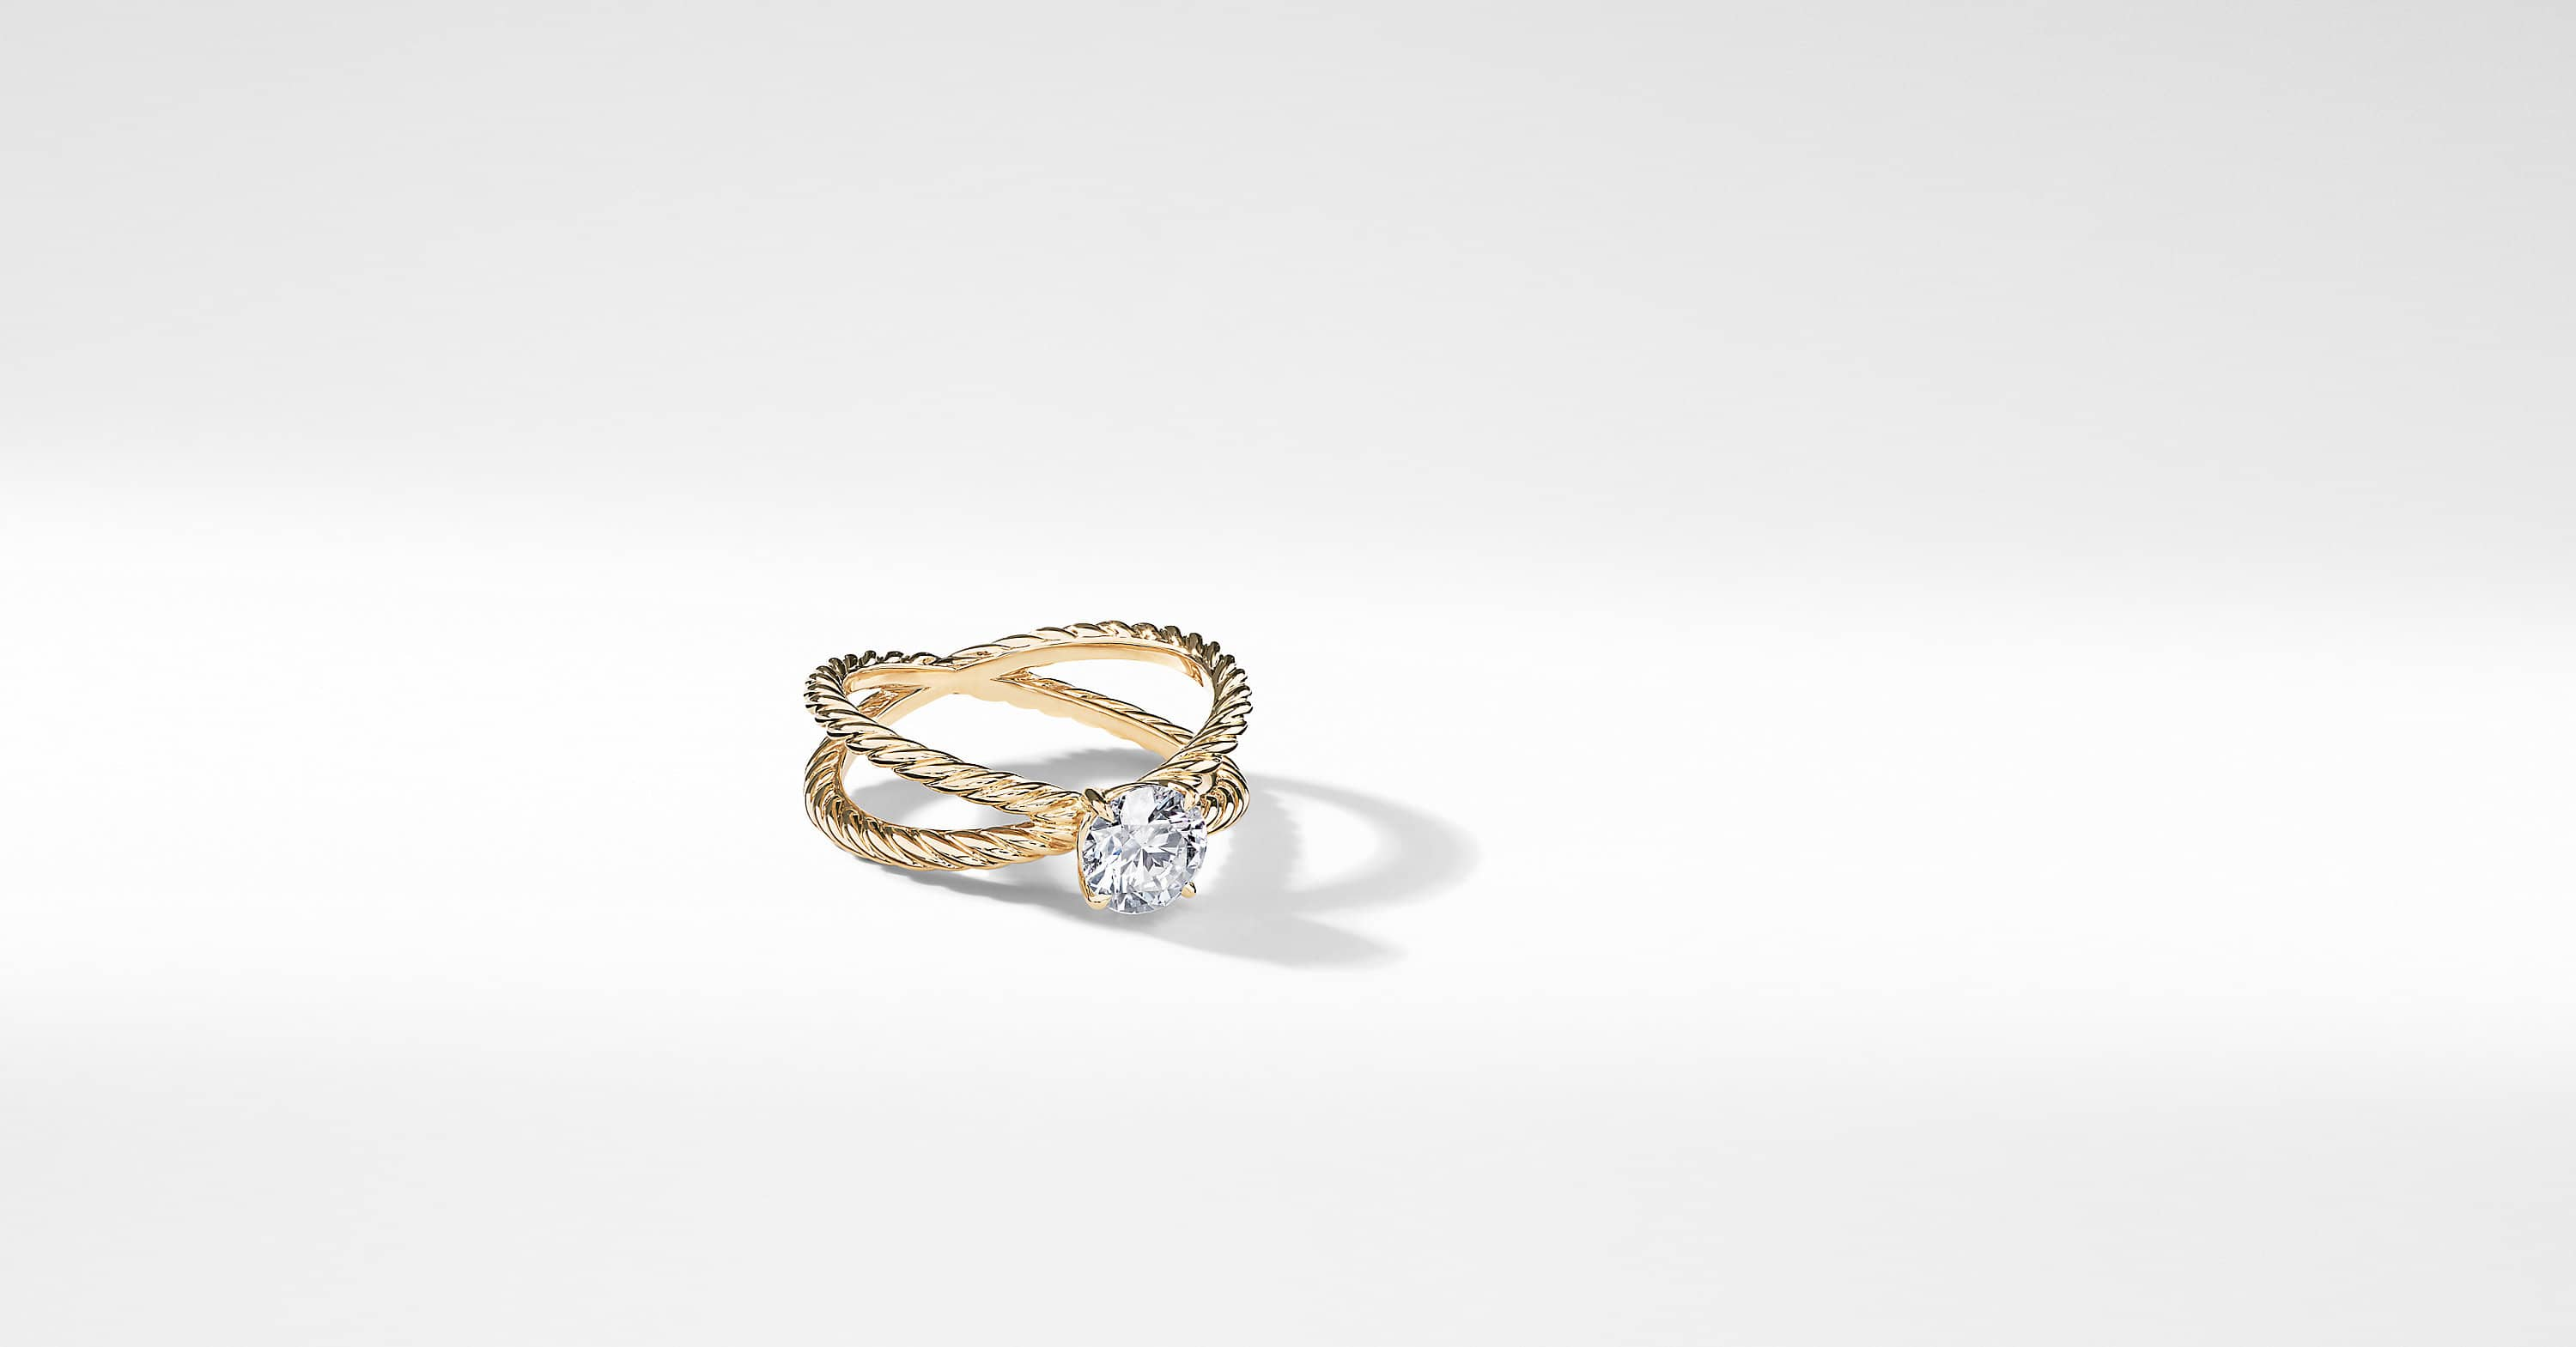 DY Crossover Petite Engagement ring in 18K Yellow Gold, Round